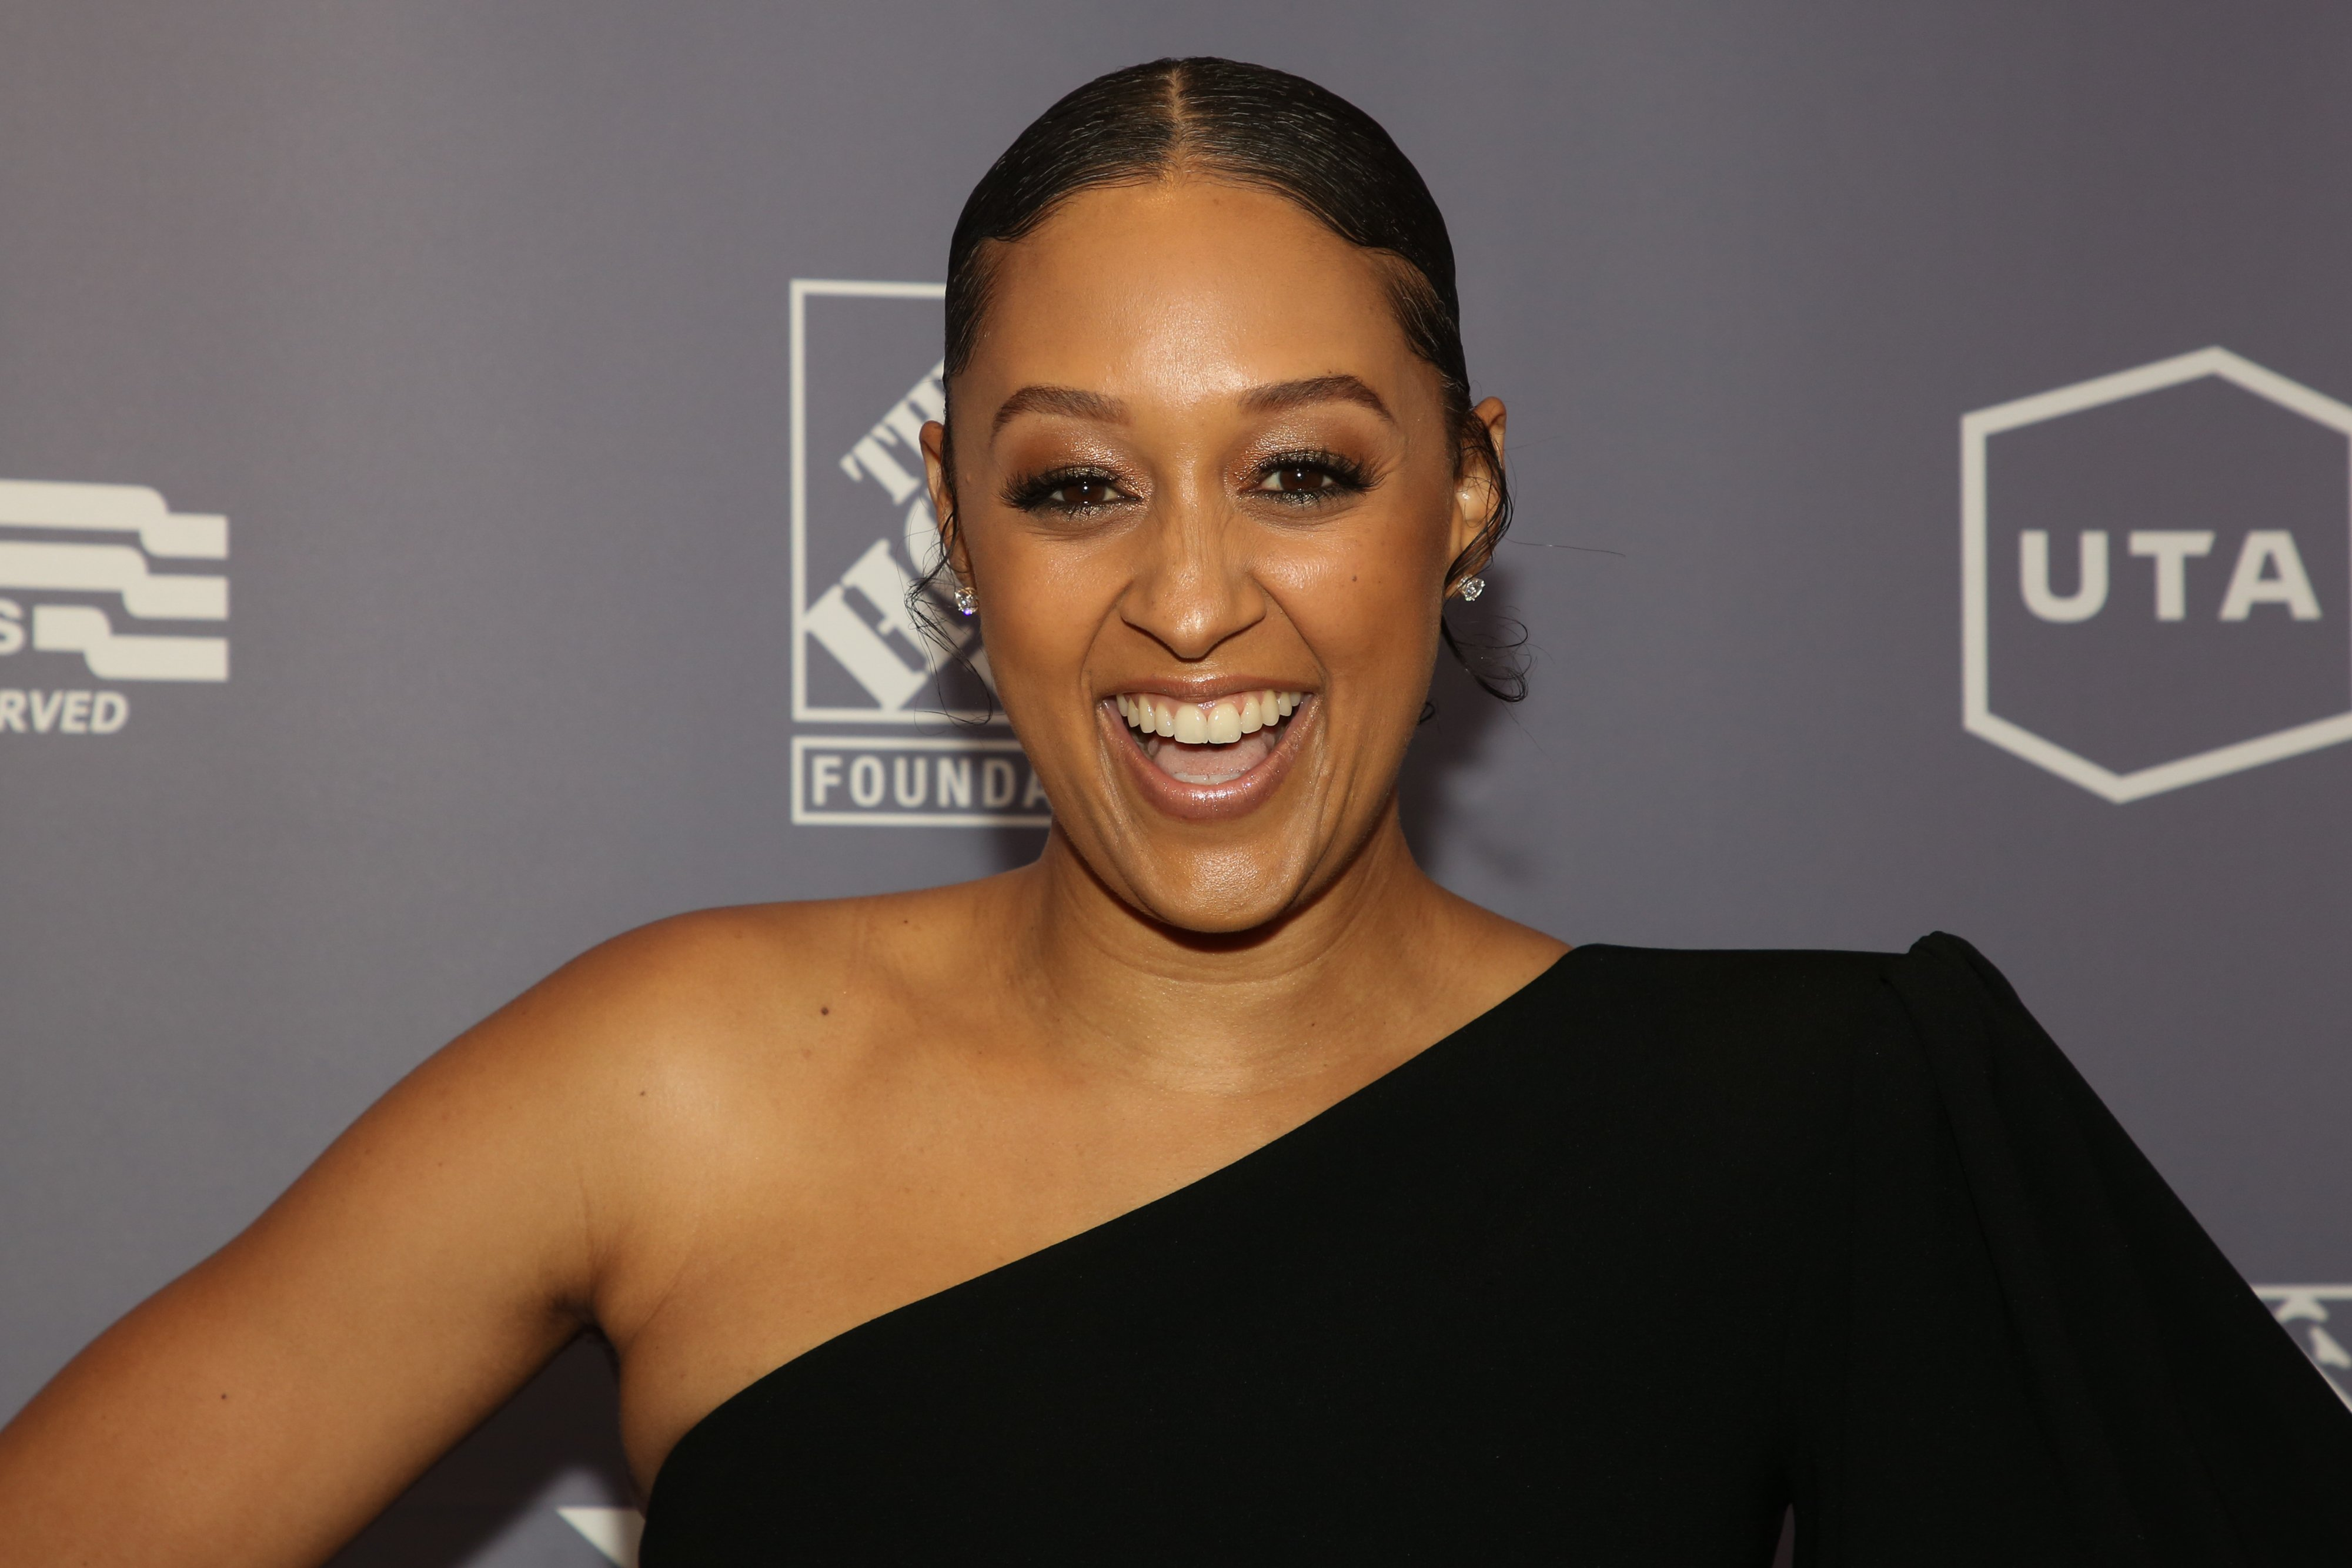 Tia Mowry at the 2019 U.S. Vets Salute Gala on November 05, 2019 in Beverly Hills, California. | Source: Getty Images